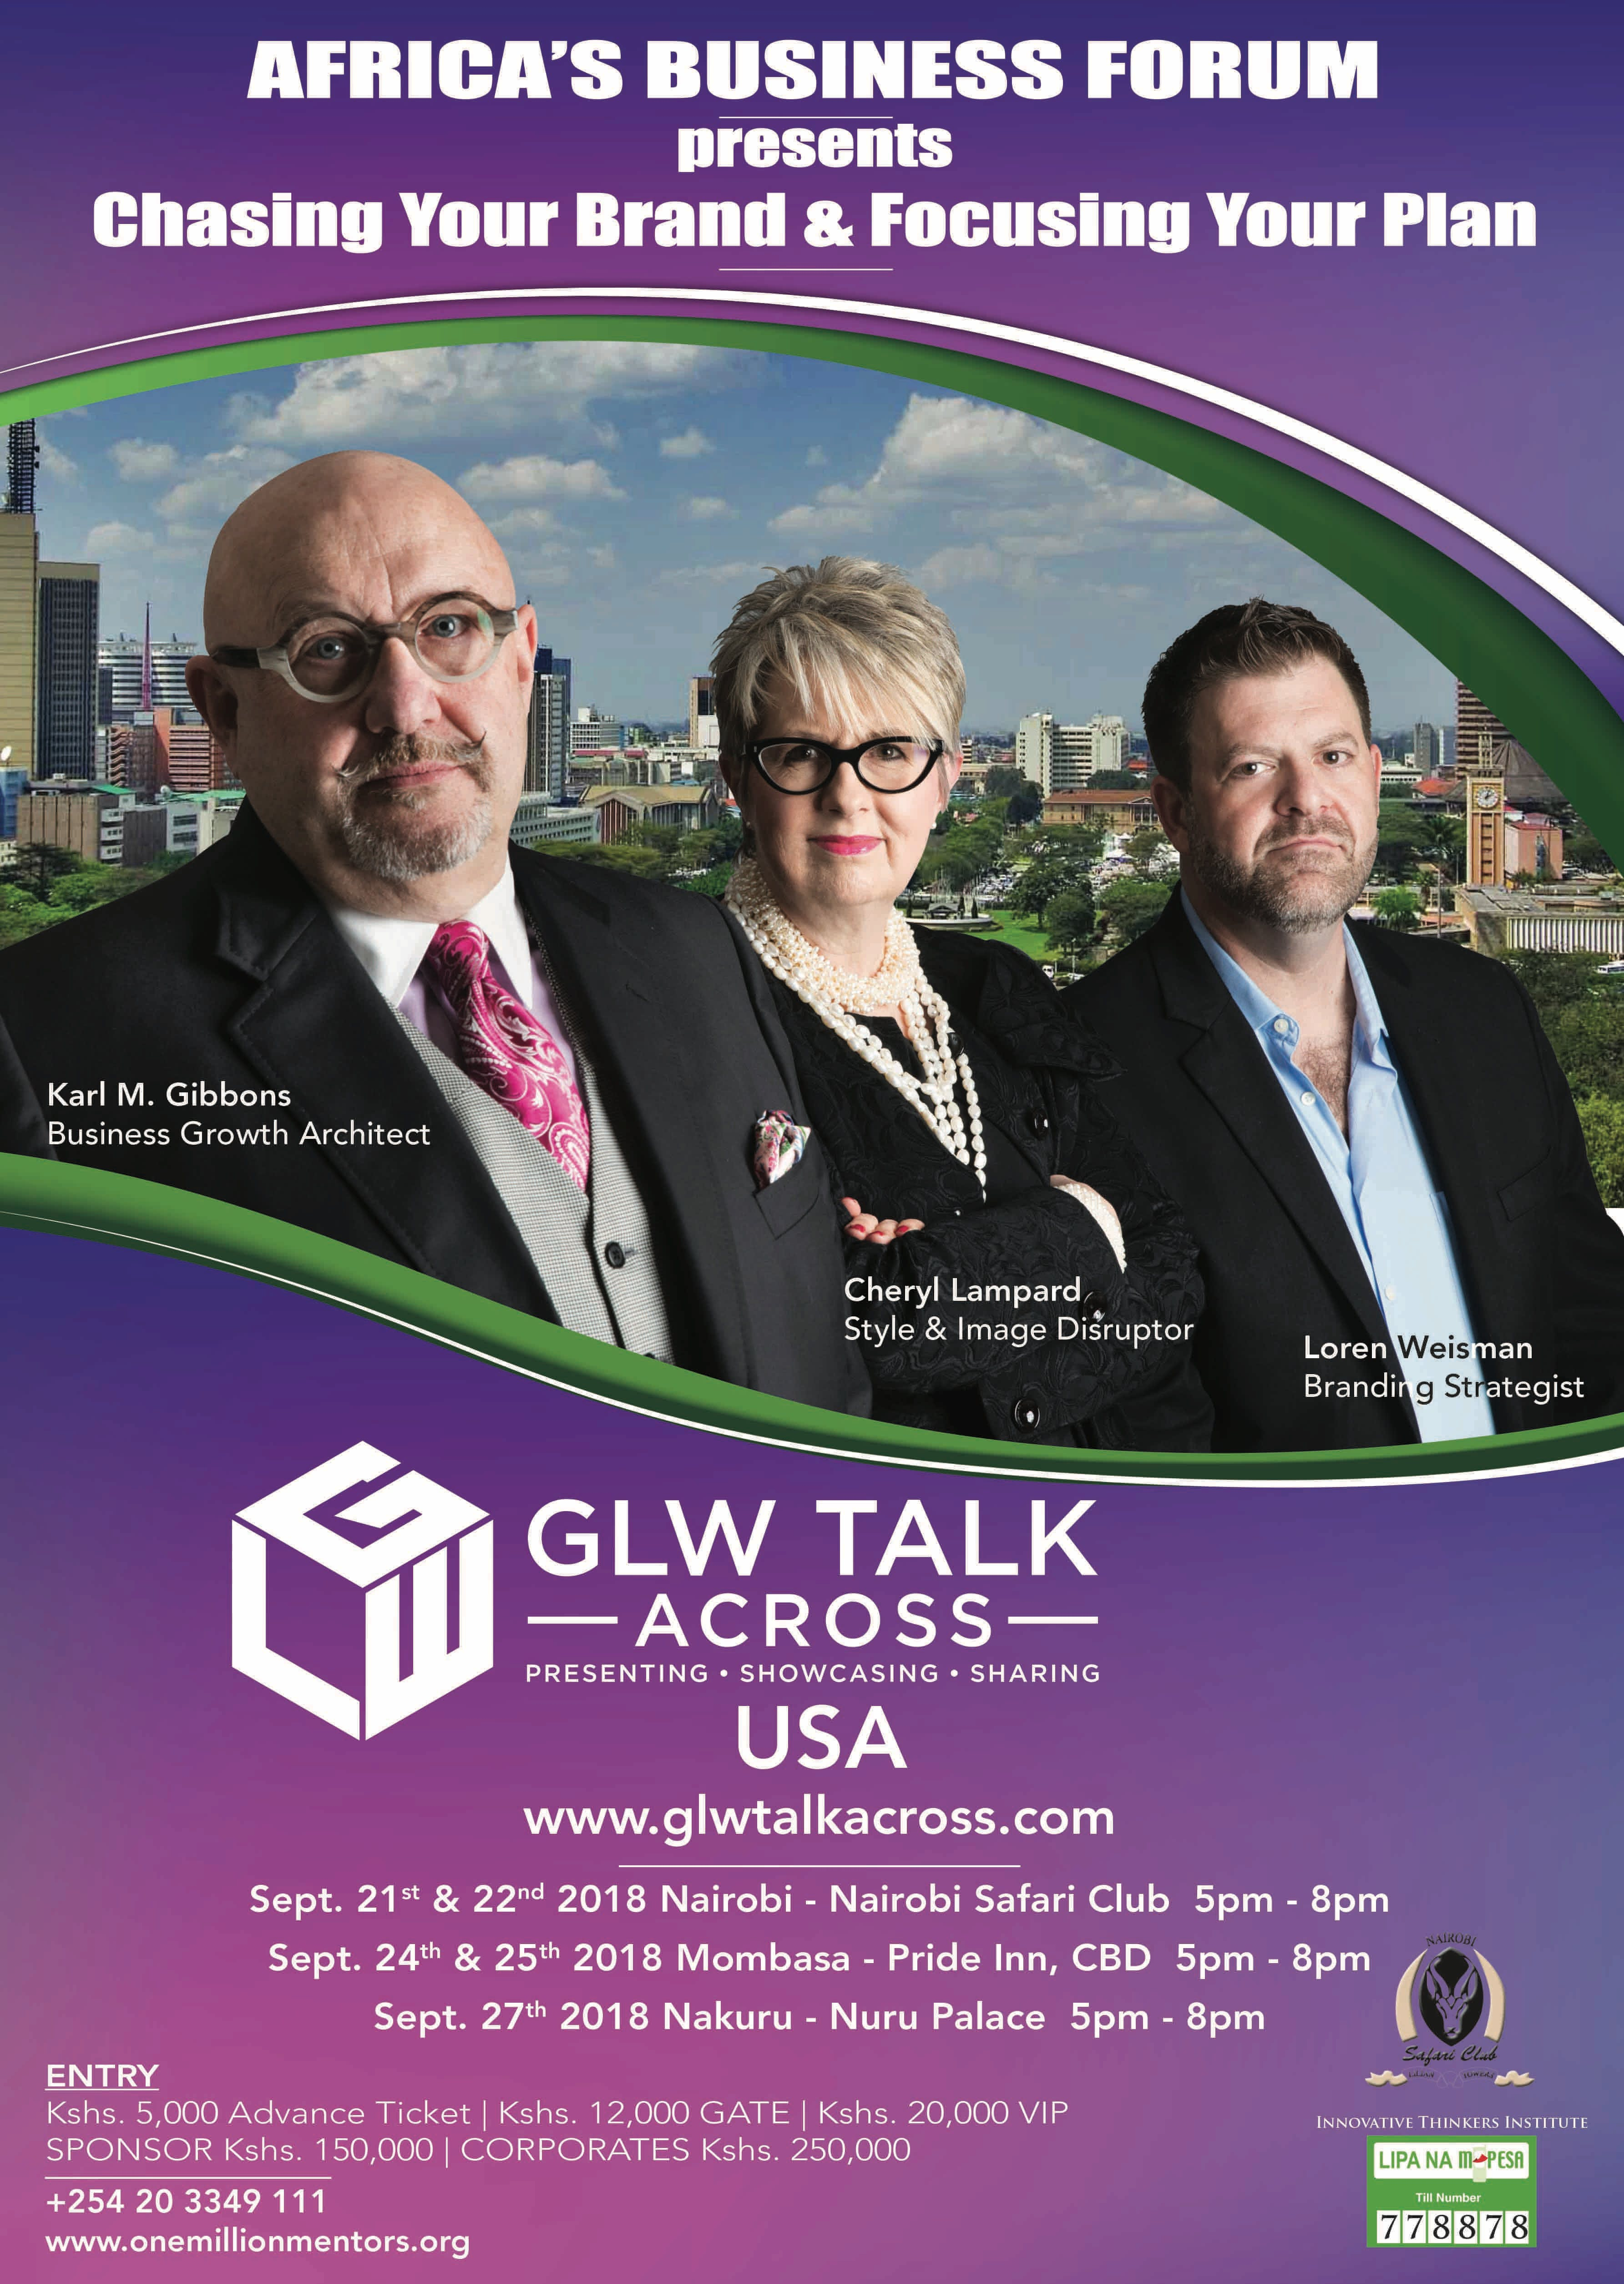 Africa Business Forum Presents Chasing Your Brand &amp Focusing Your Plan with GLW Talk Across Kenya.